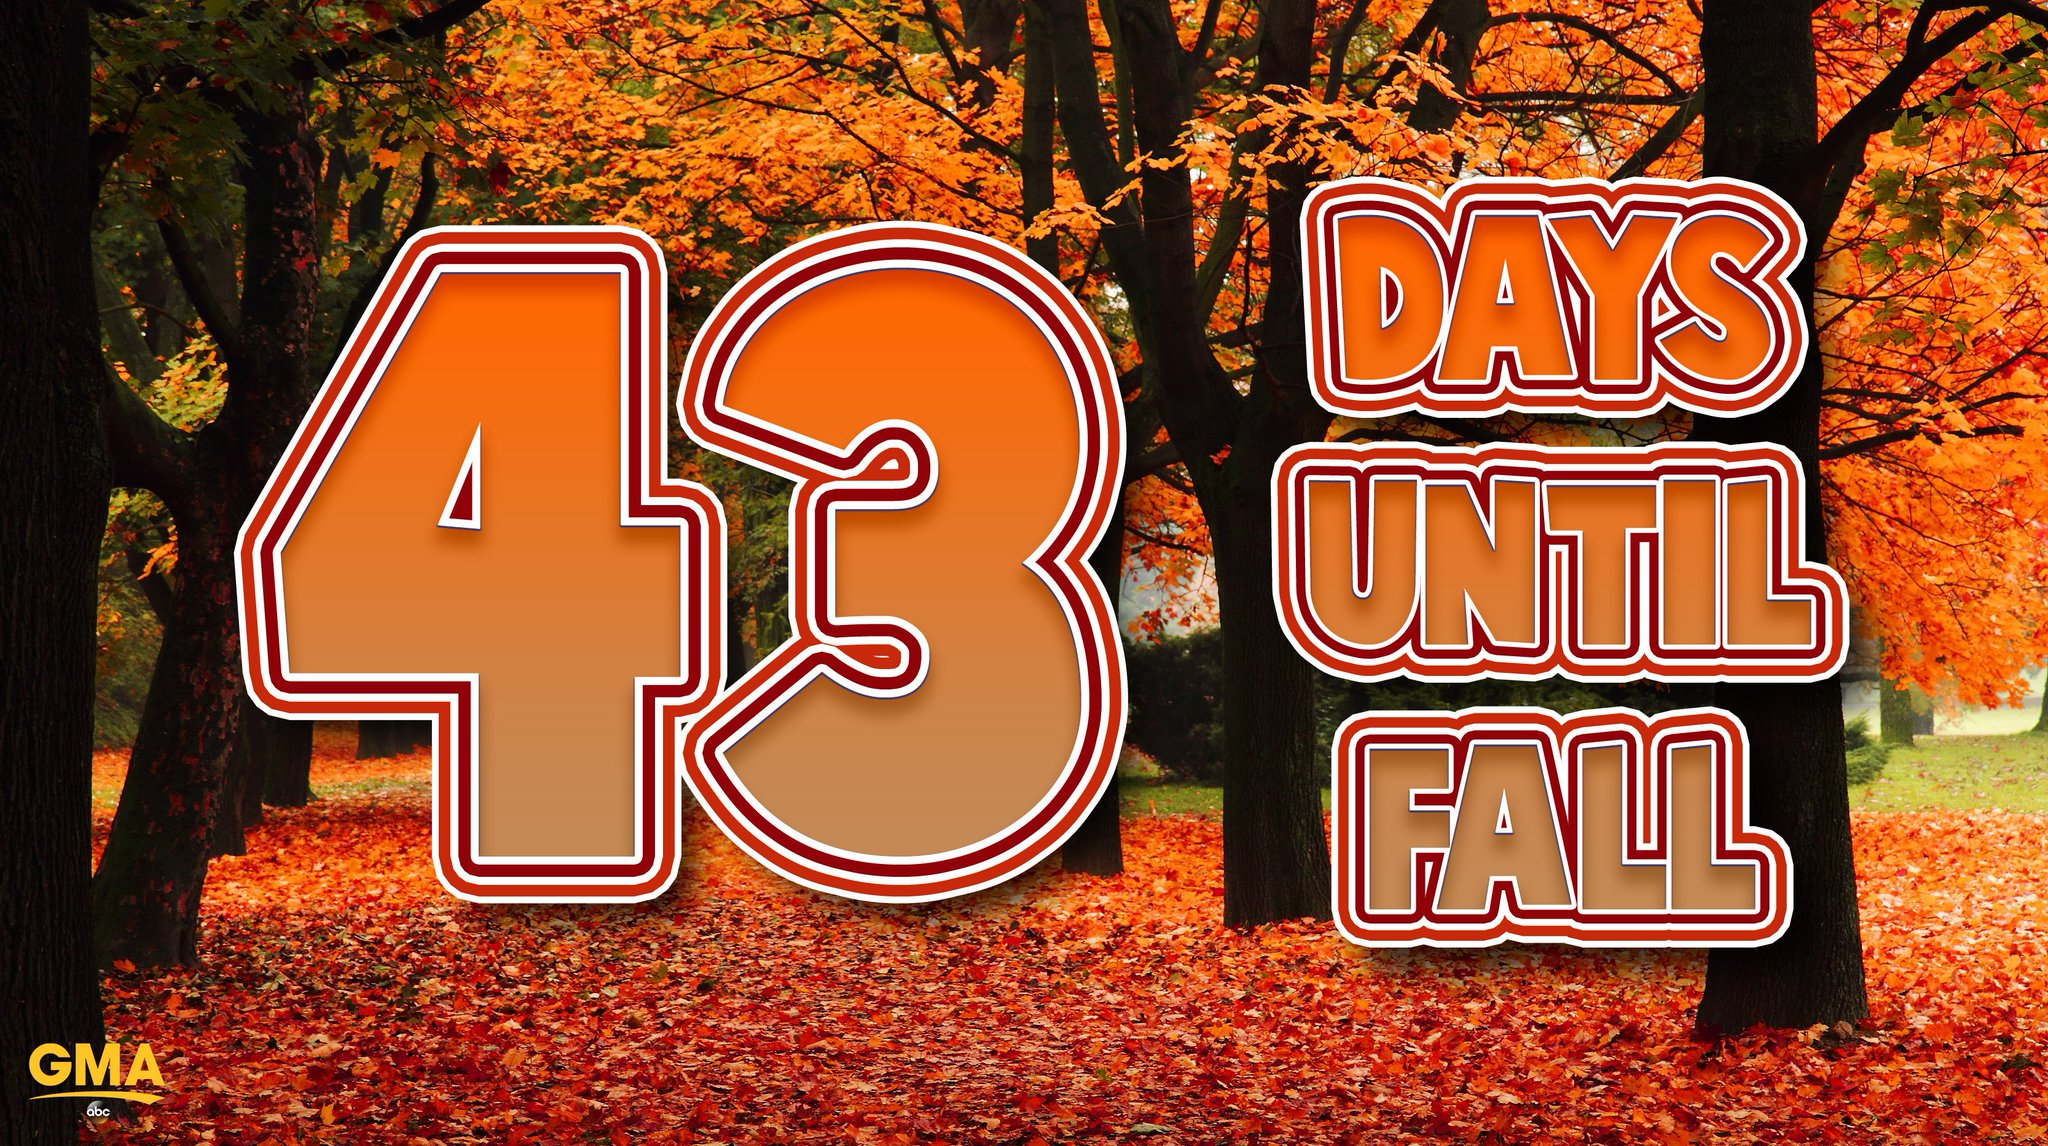 ONLY 43 DAYS UNTIL FALL! �� https://t.co/EfVyouYLy3